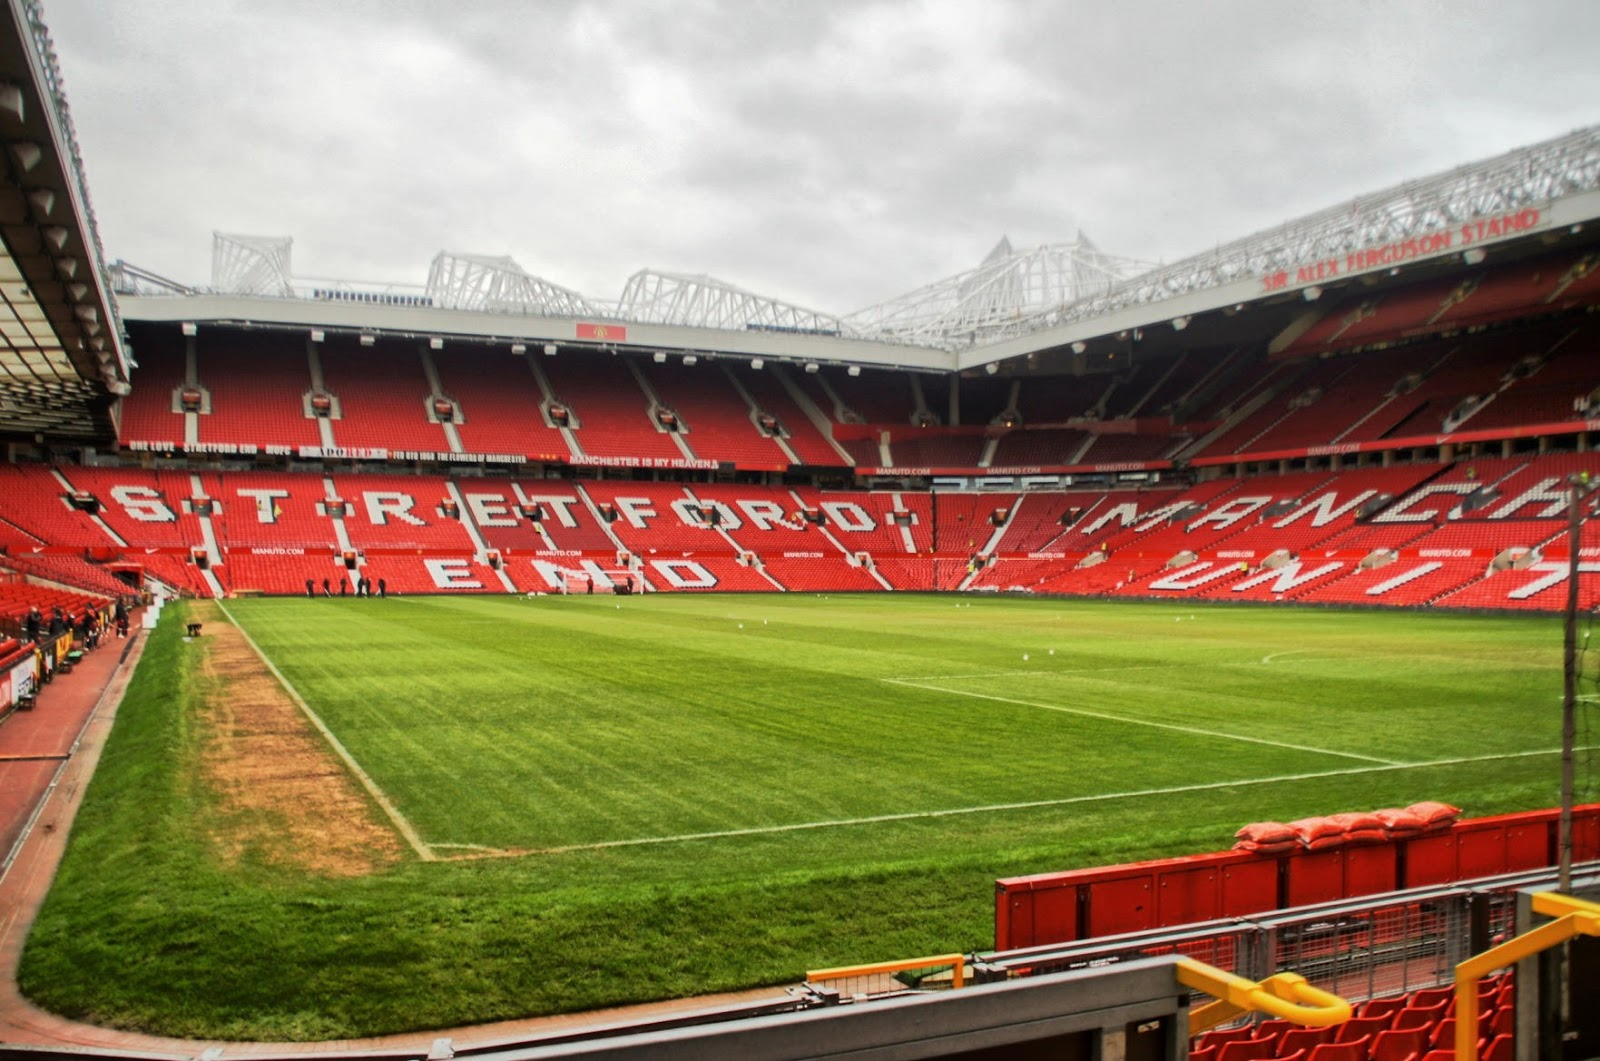 hotels near old trafford - Hotels Of Manchester